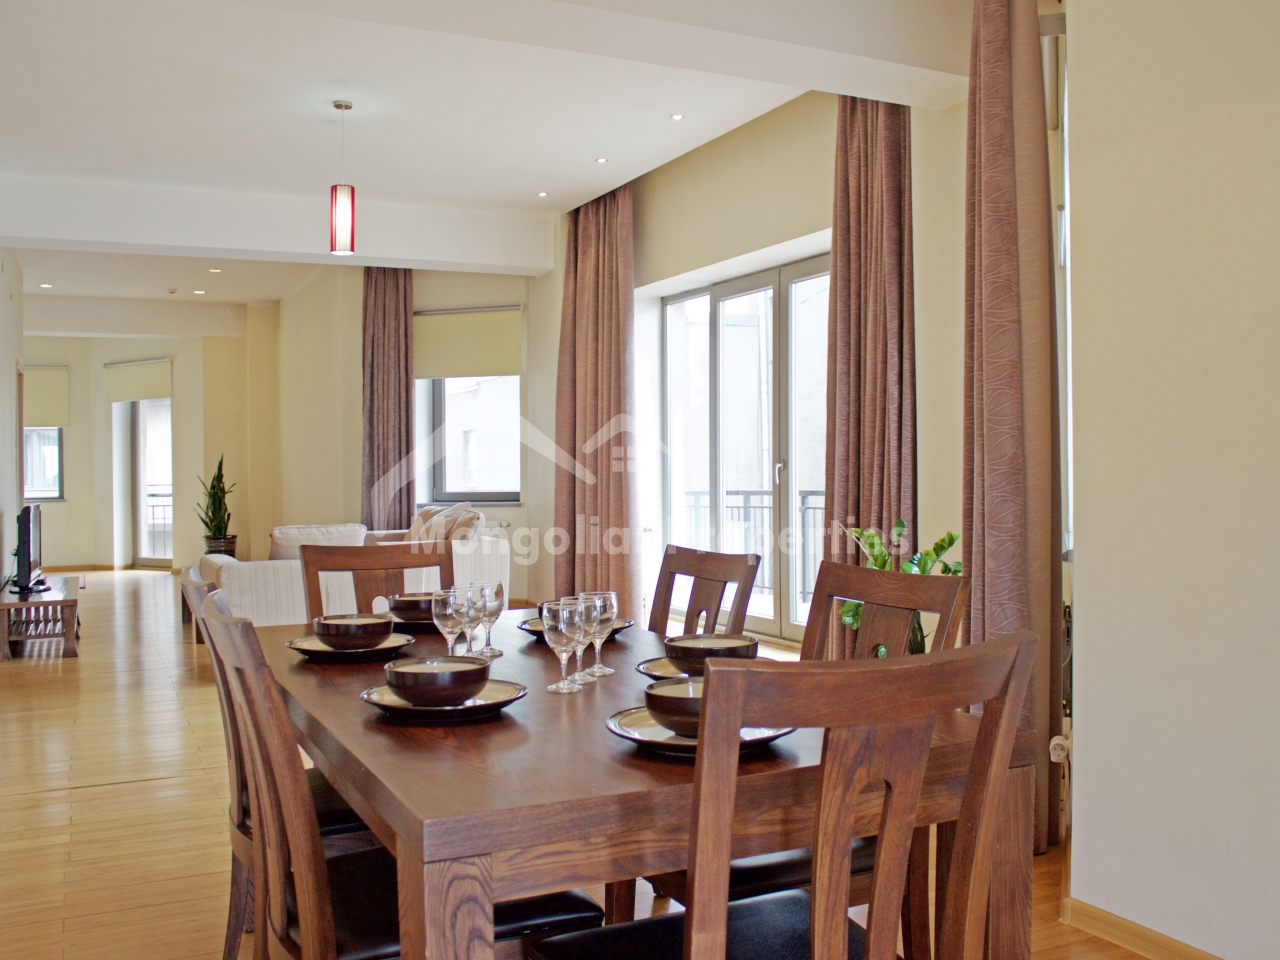 FOR SALE: 2 Bedroom Apartment Near Embassy Area